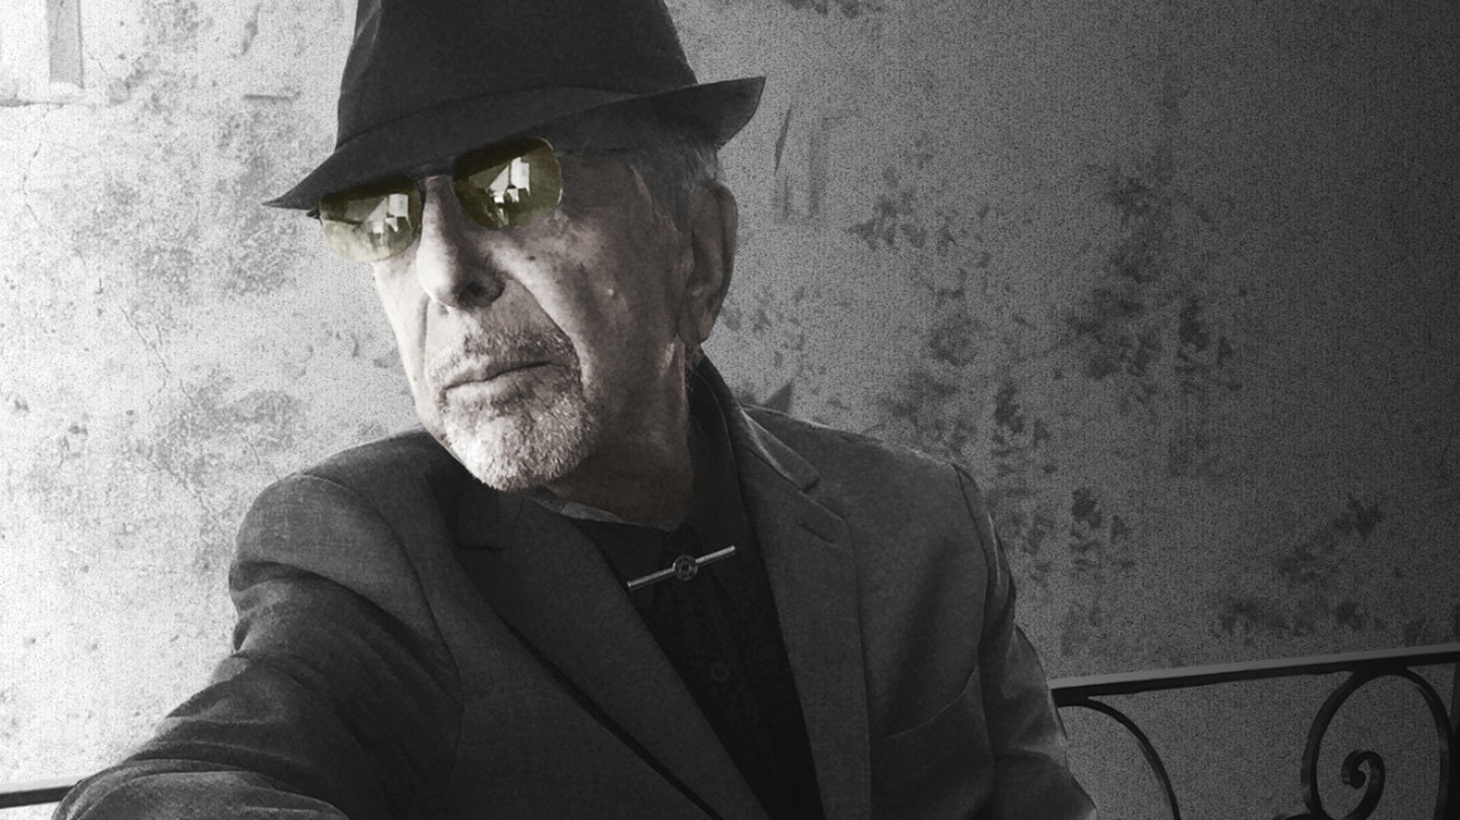 Chris Douridas recorded an exclusive interview with Leonard Cohen just after his 82nd birthday.